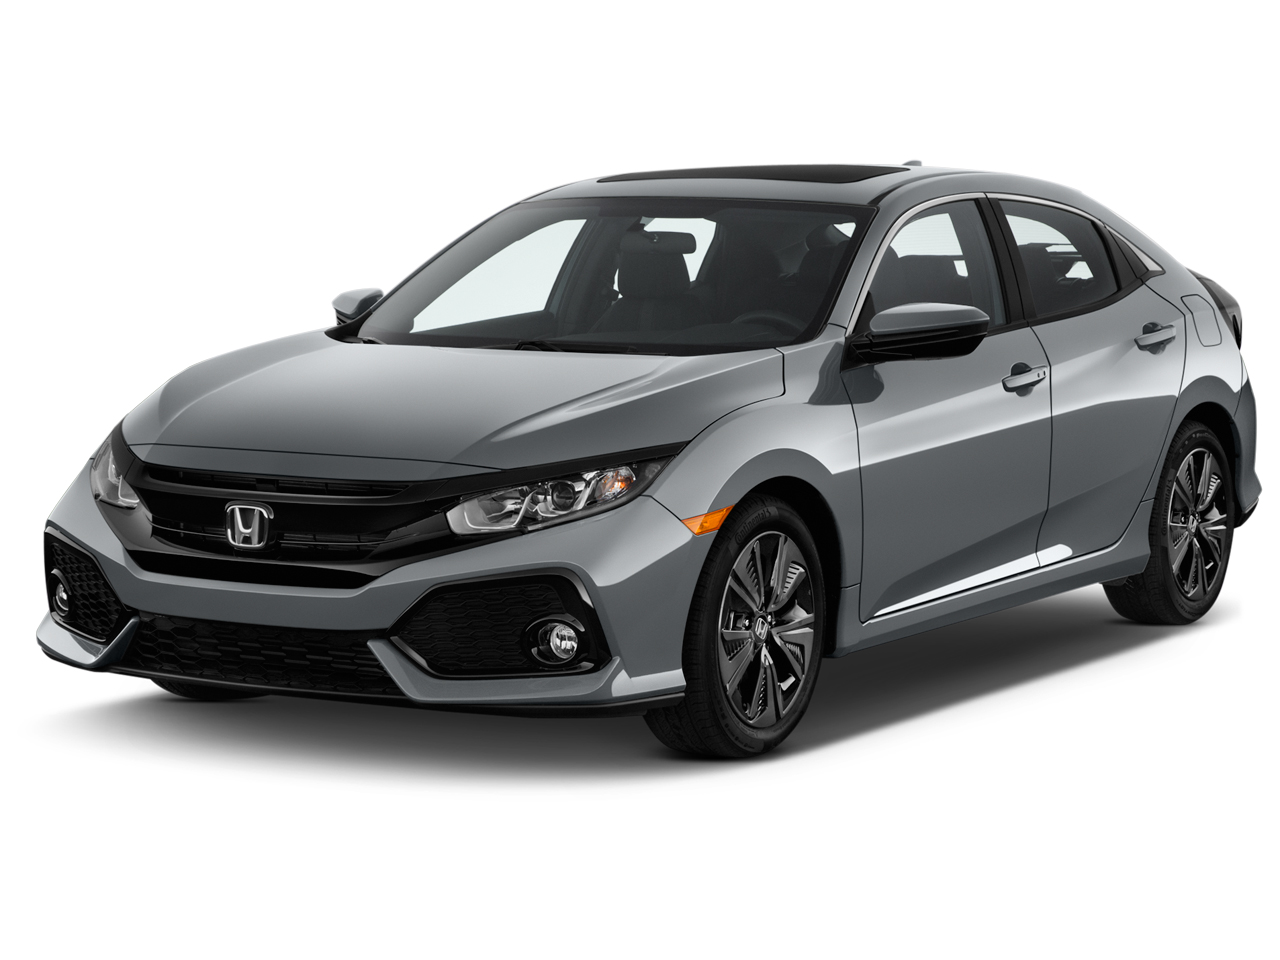 2017 honda civic hatchback review ratings specs prices and photos the car connection. Black Bedroom Furniture Sets. Home Design Ideas